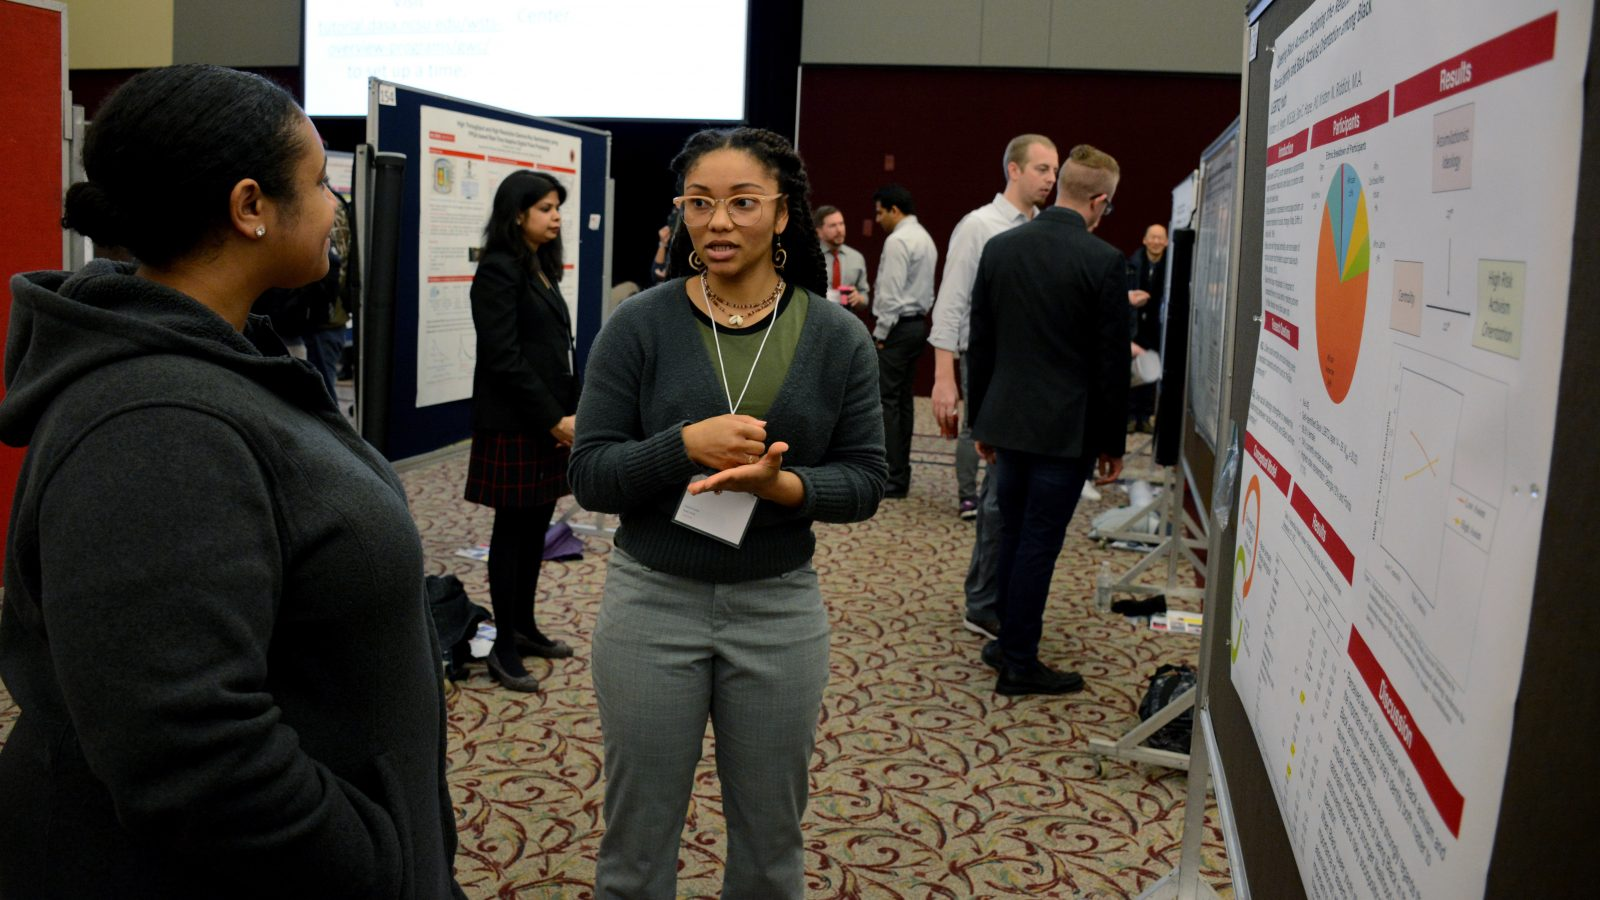 Kristen Pender stands near her research poster and talks with Elan Hope.